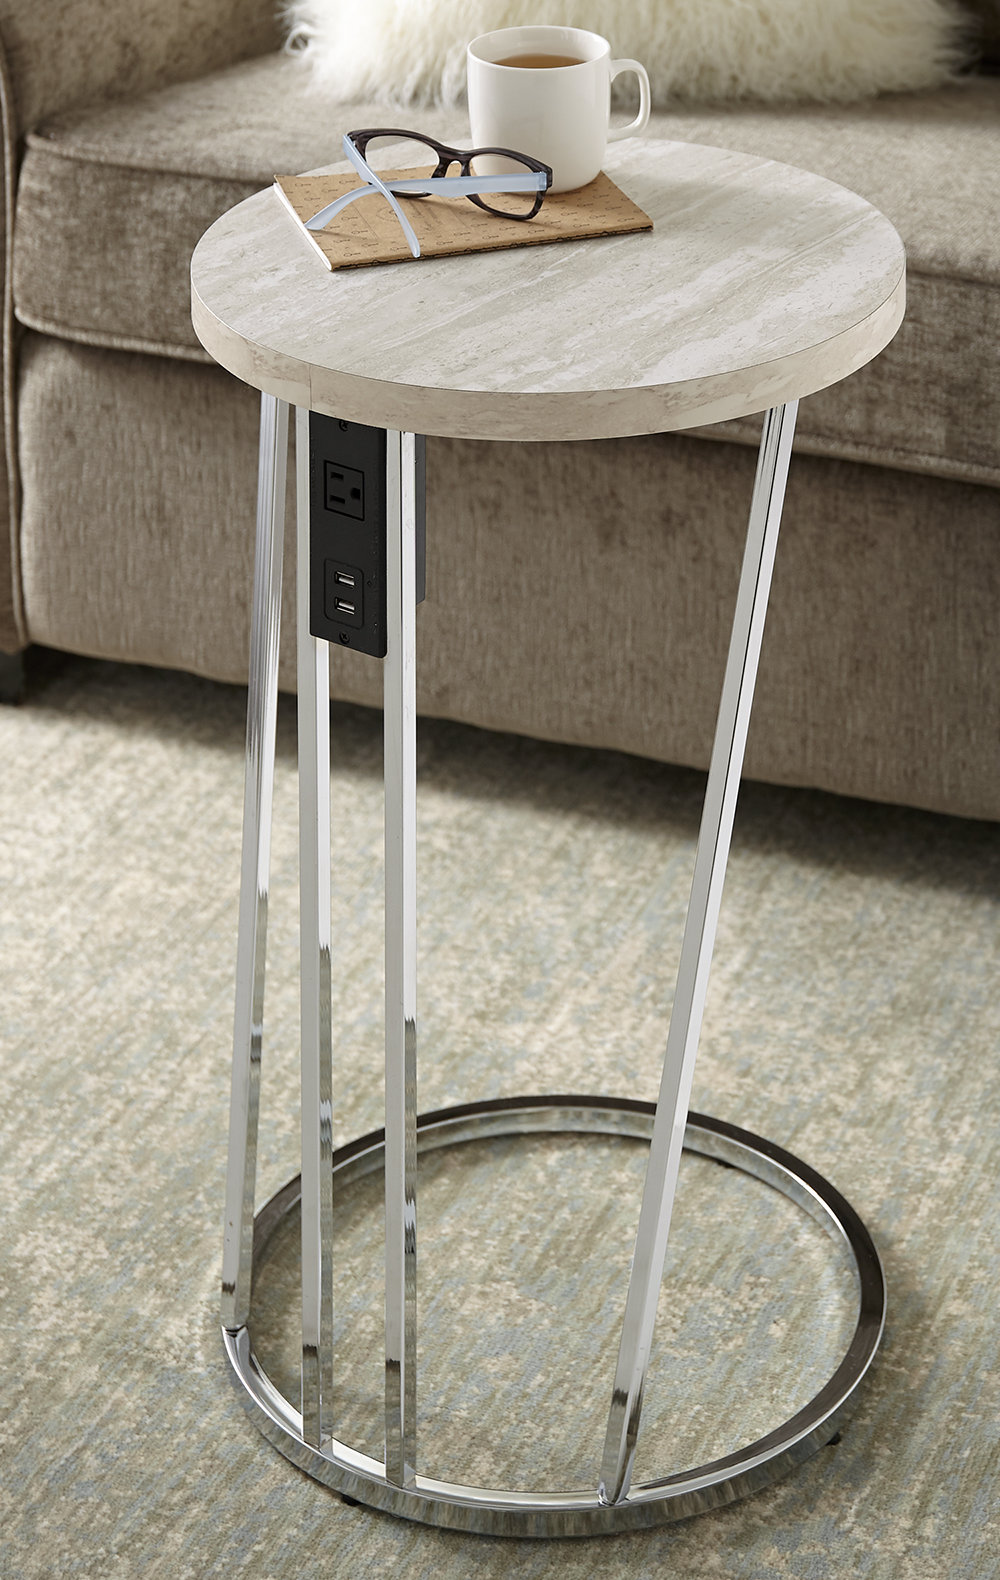 end table with stone top quarry accent quickview garden high legs front door threshold small hairpin battery powered decorative lights unusual living room ornaments three piece